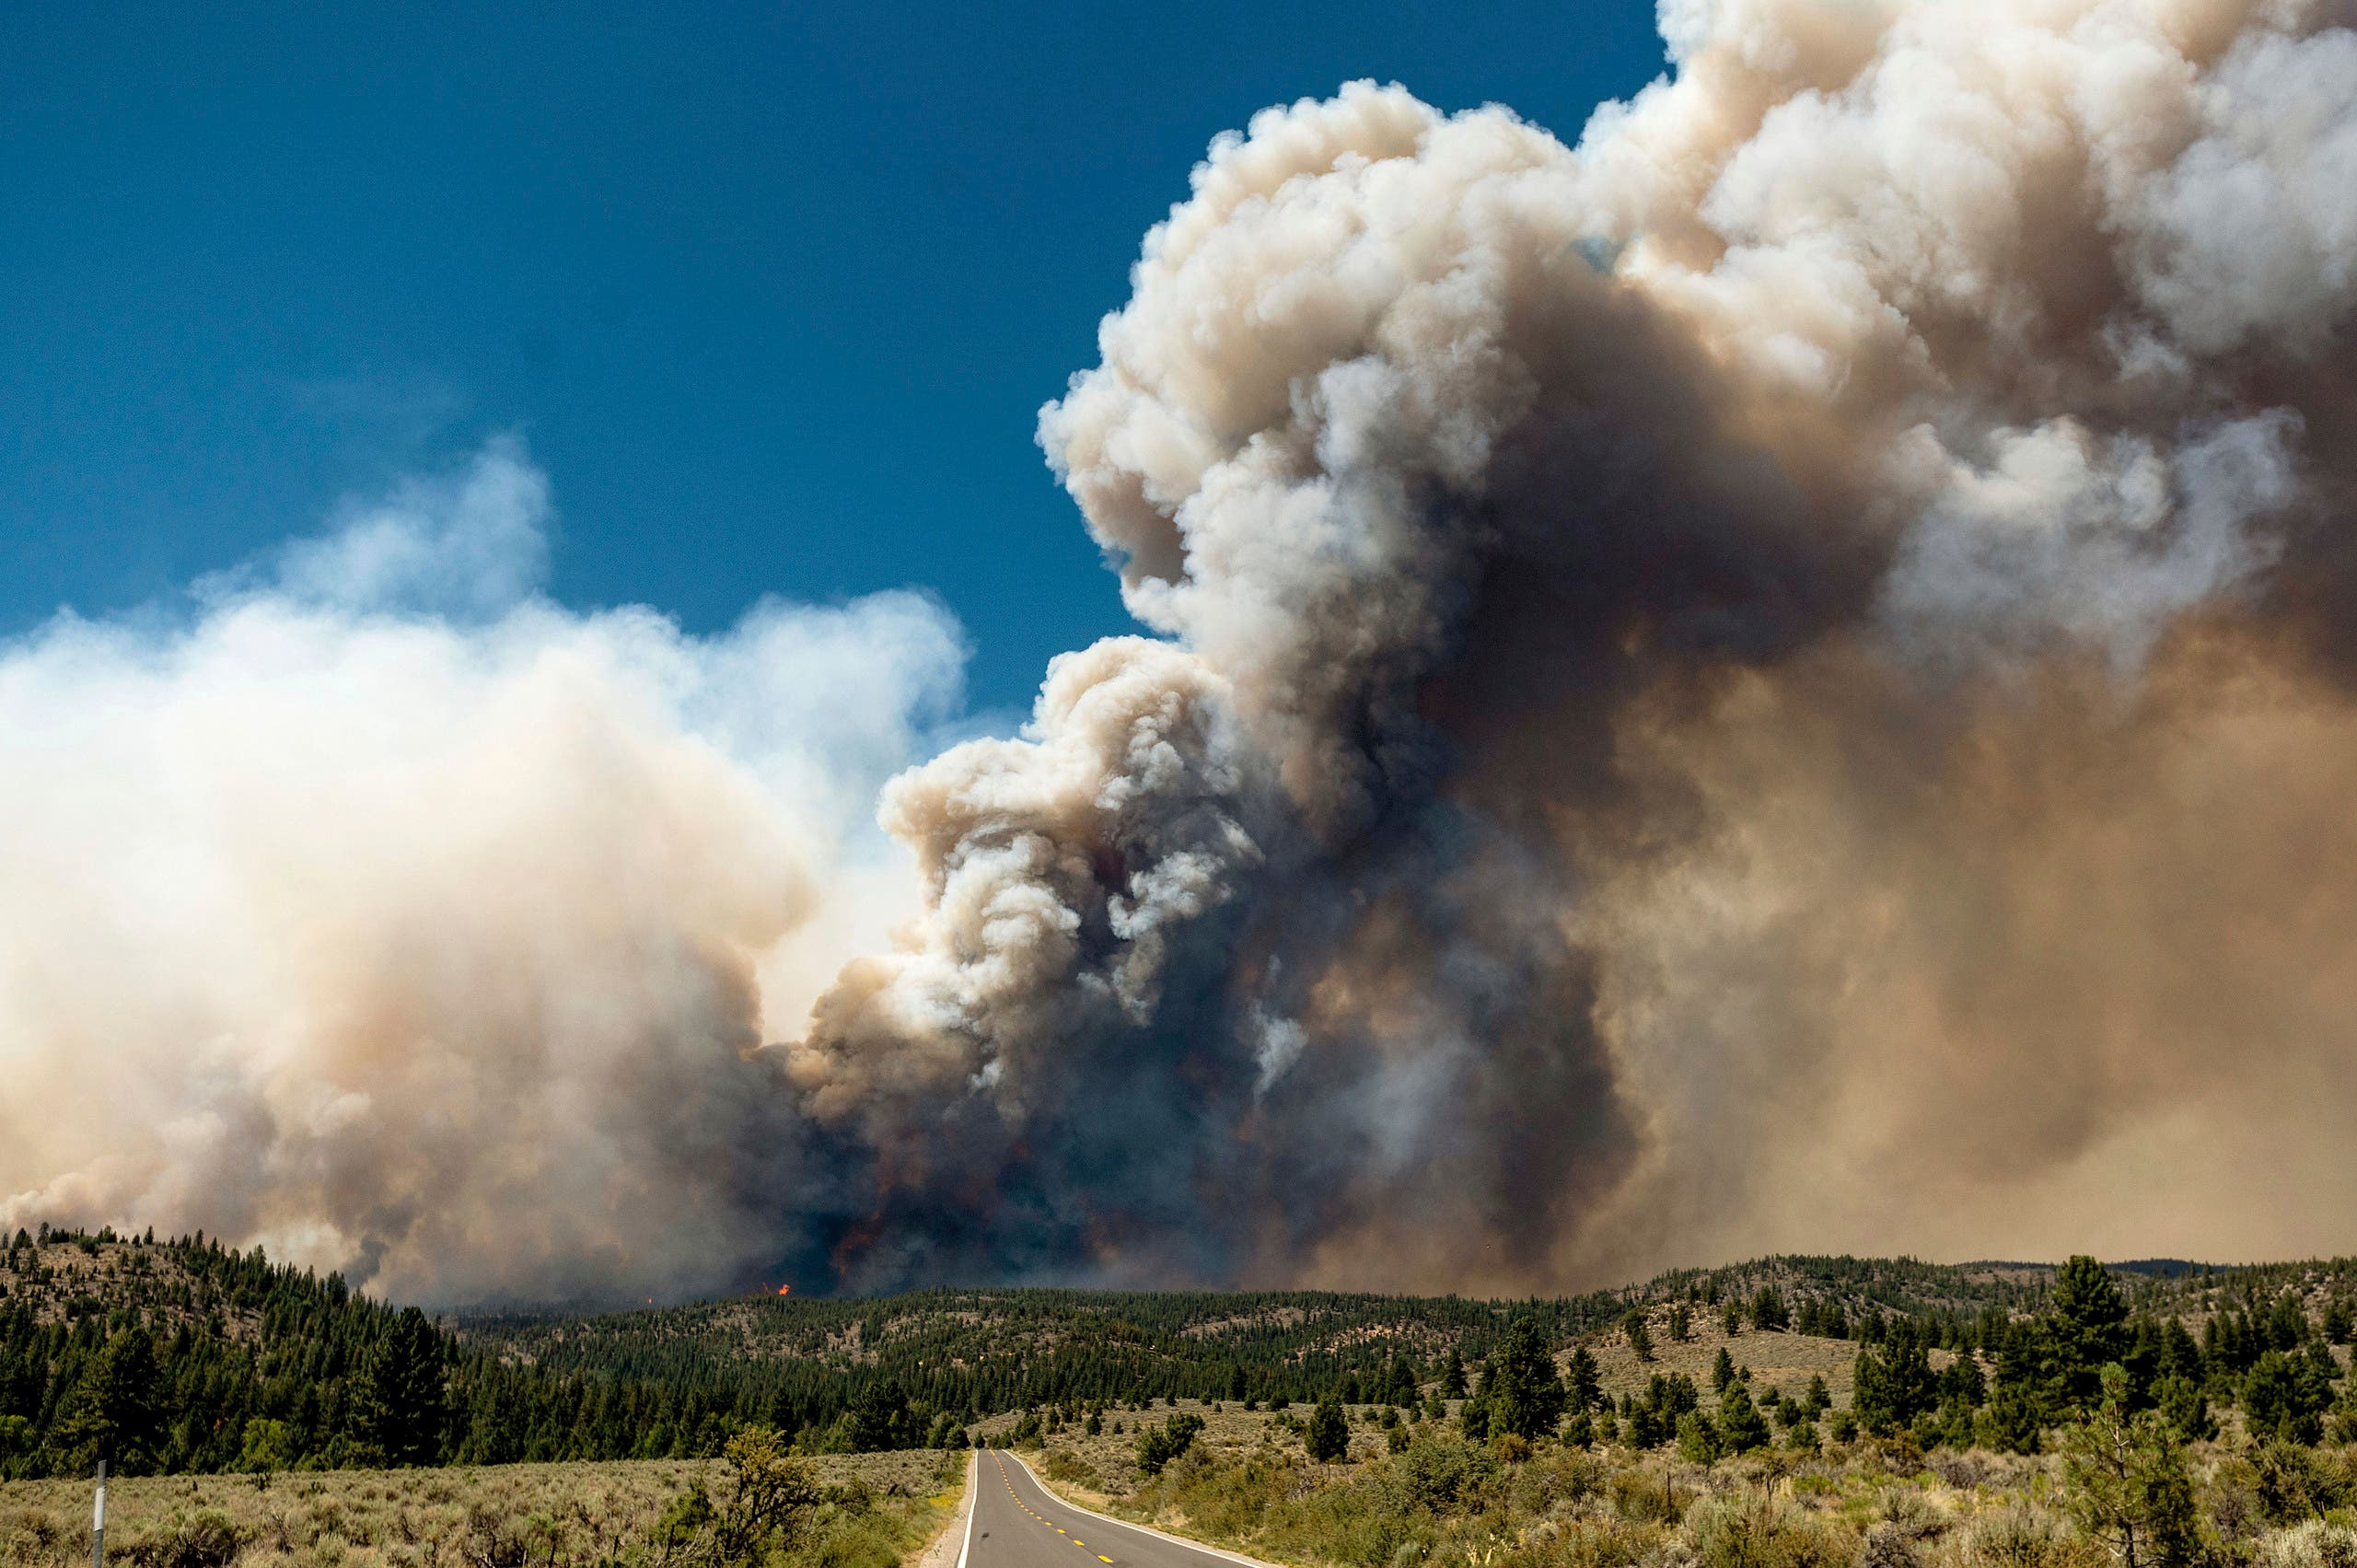 A plume of smoke rises from the Sugar Fire, part of the Beckwourth Complex Fire, burning in Plumas National Forest, Calif., on Thursday, July 8, 2021. (AP)